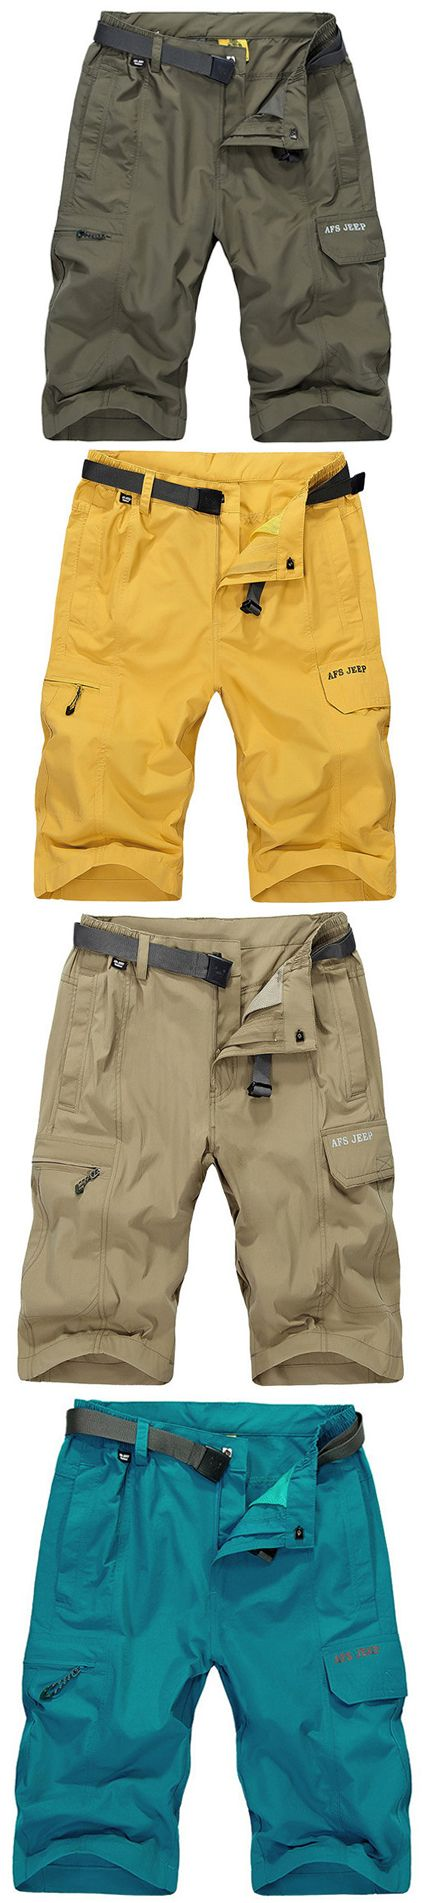 AFSJEEP Mens Summer Water-repellent Breathable Quick Dry Zippered Pocket Shorts